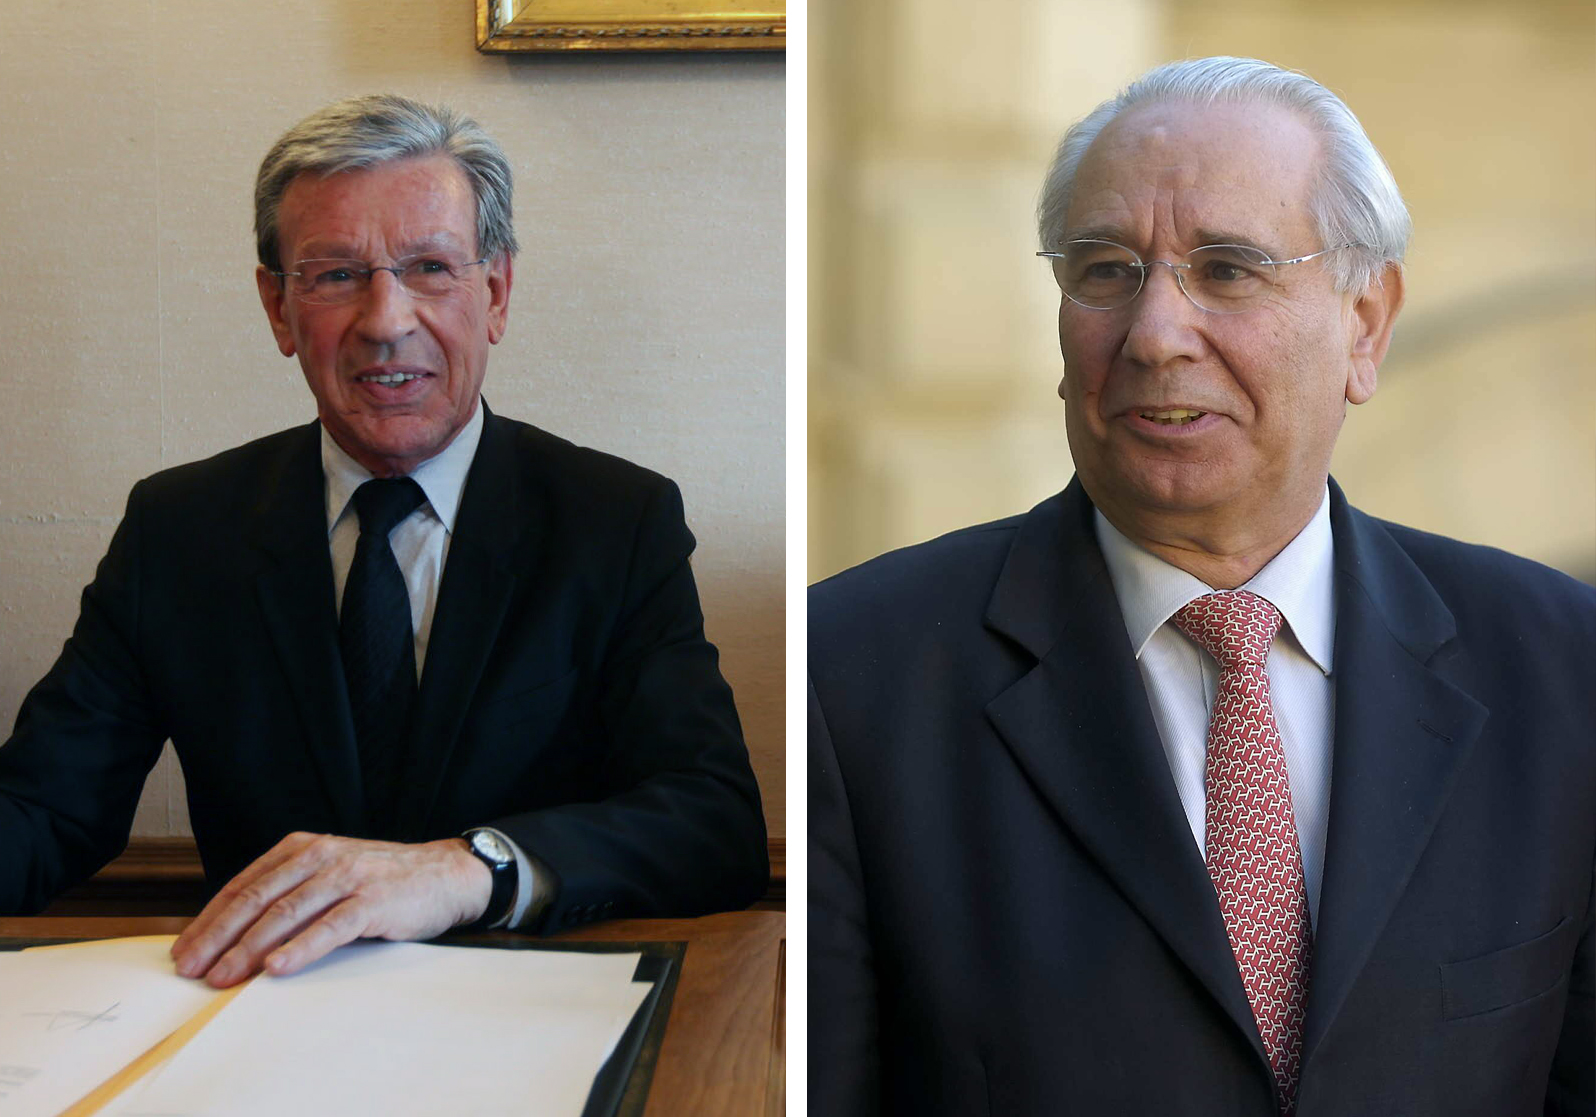 Mayors of Bayonne and Biarritz, Jean Grenet and Didier Borotra, are not running for re-election